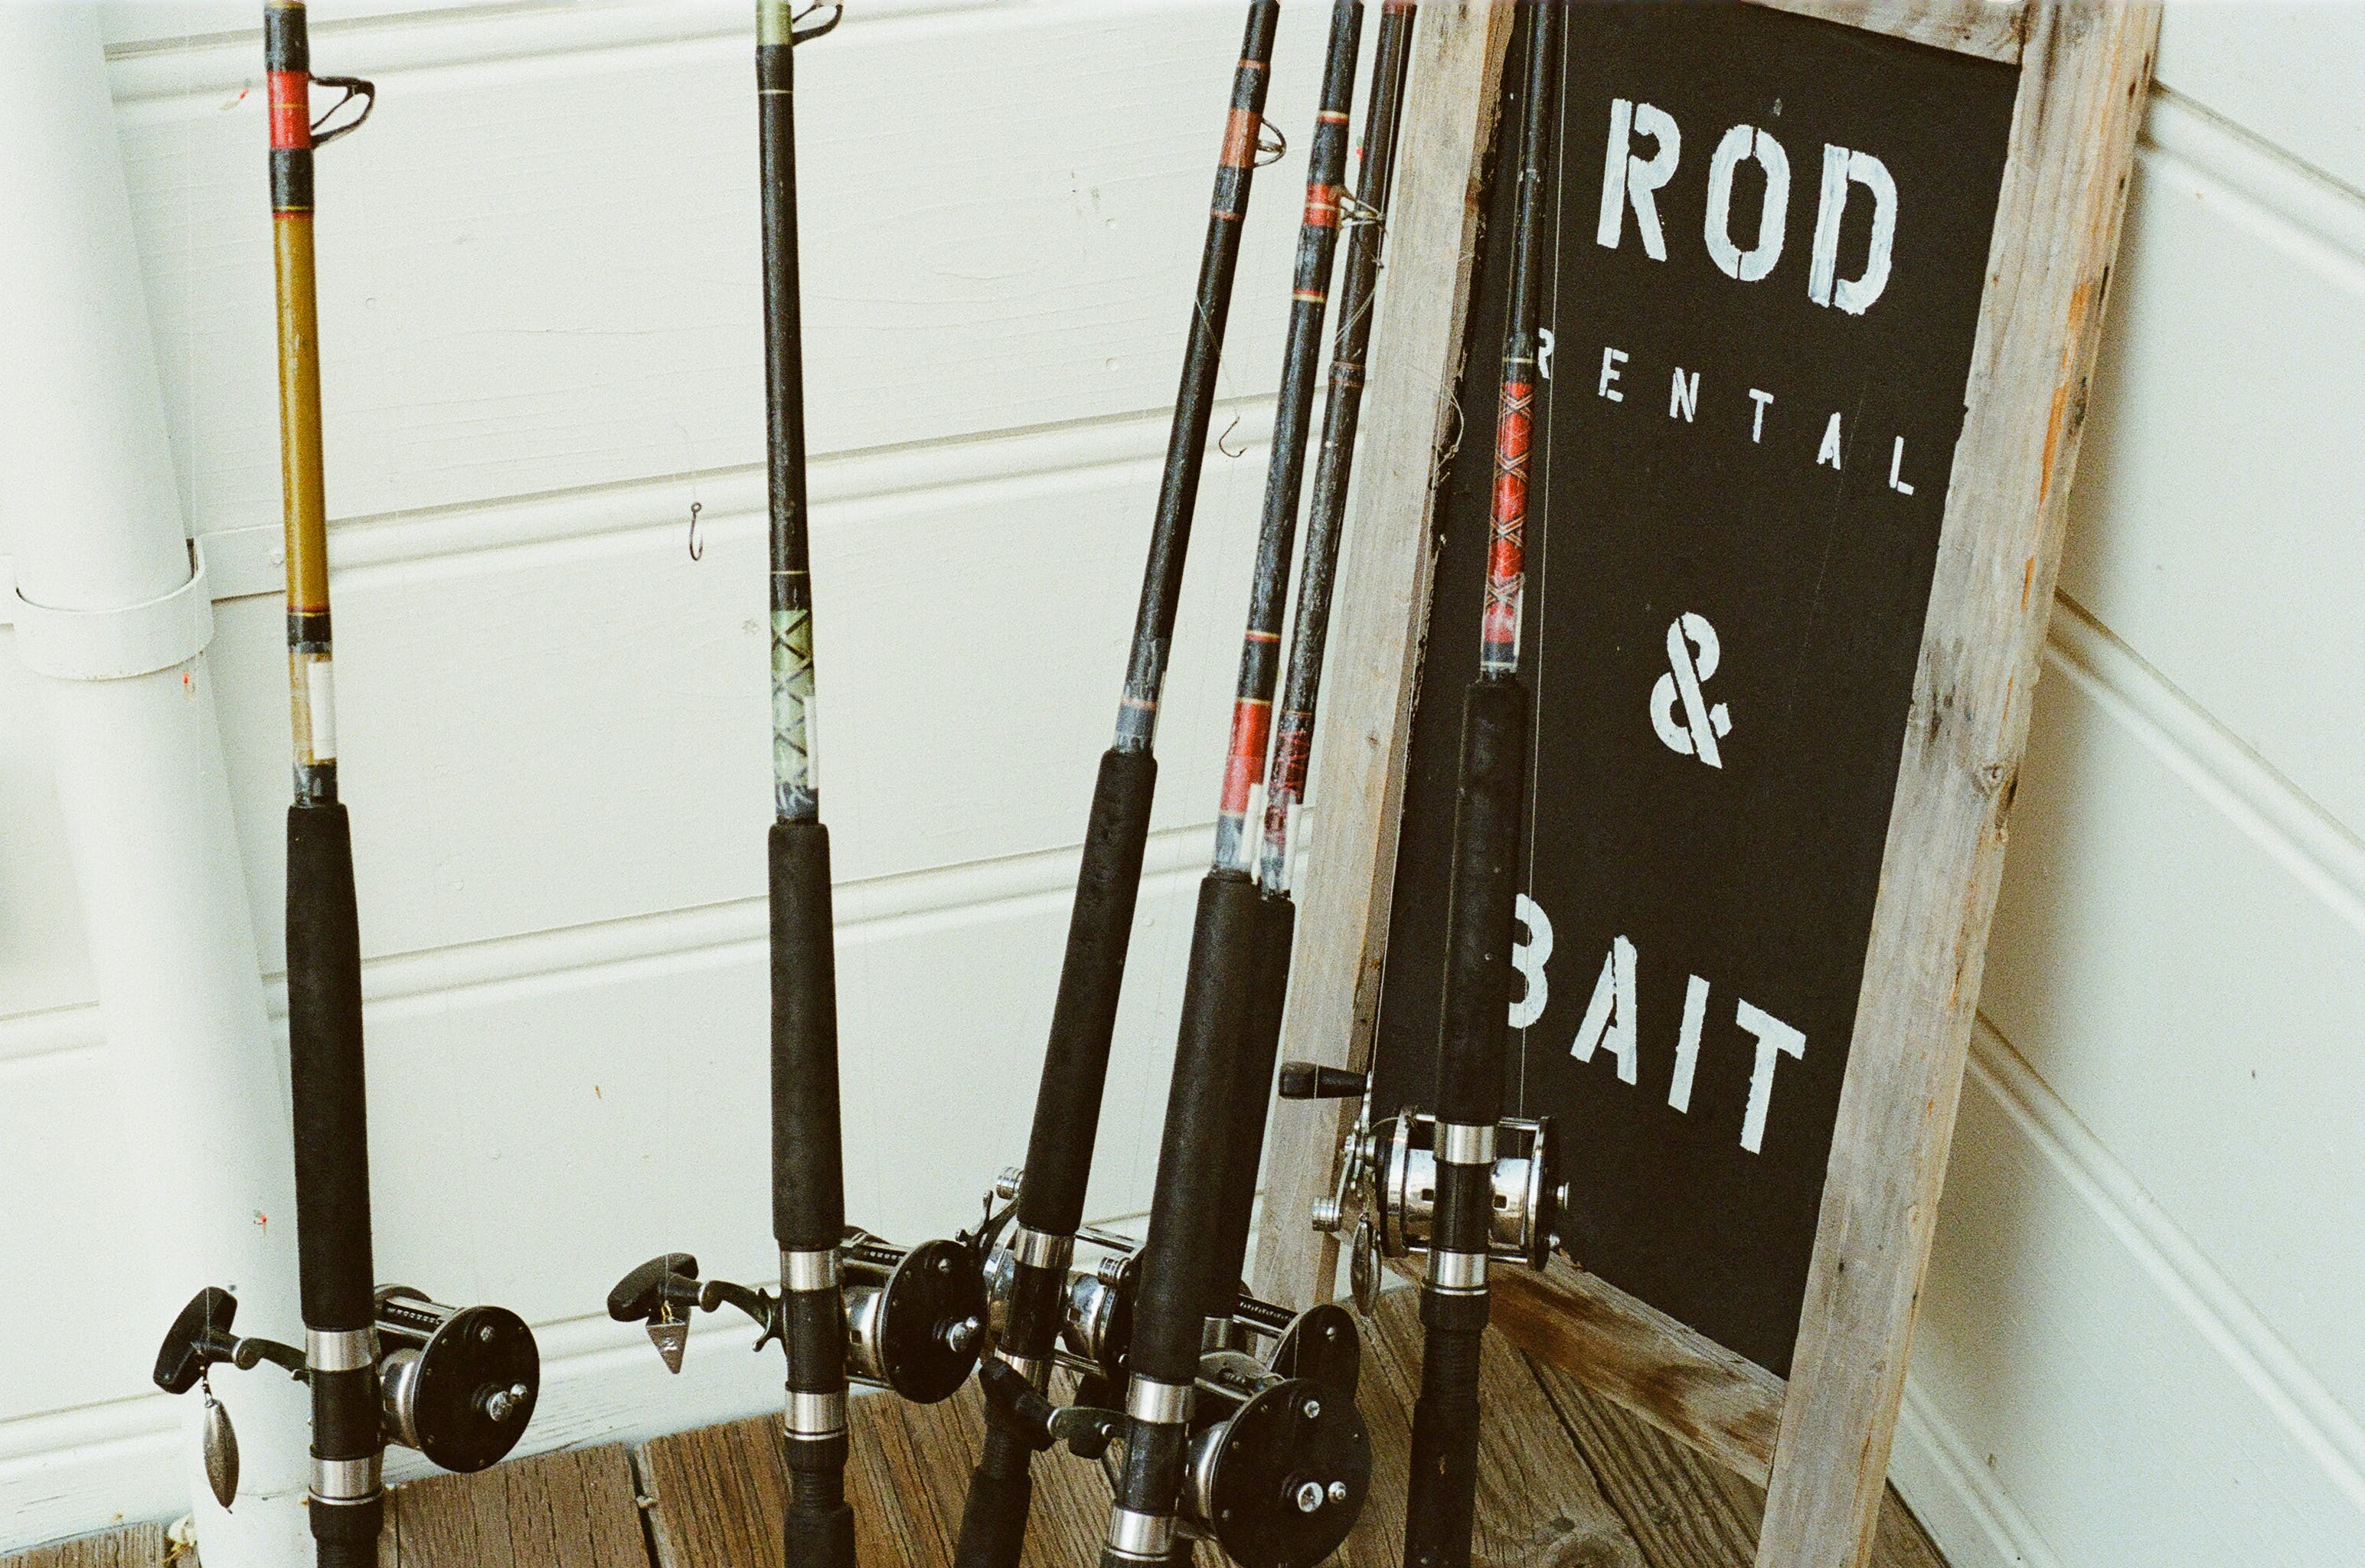 Six Assorted Fishing Rods Beside Rod Rental & Bait Signage